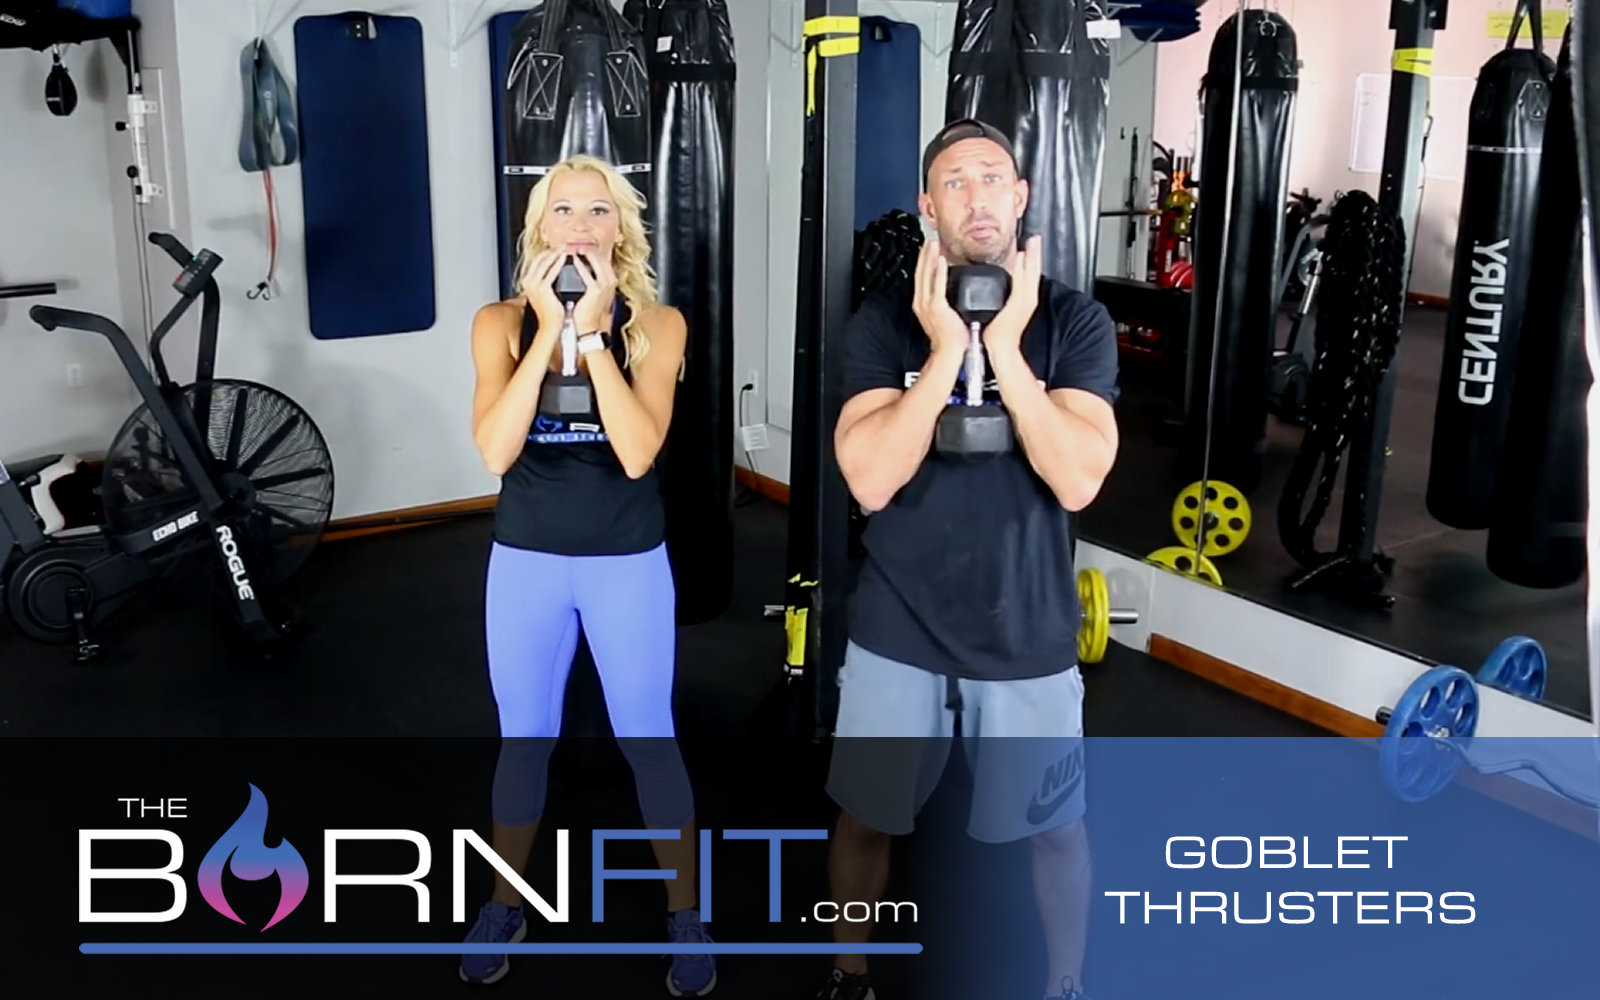 Goblet Thrusters workouts